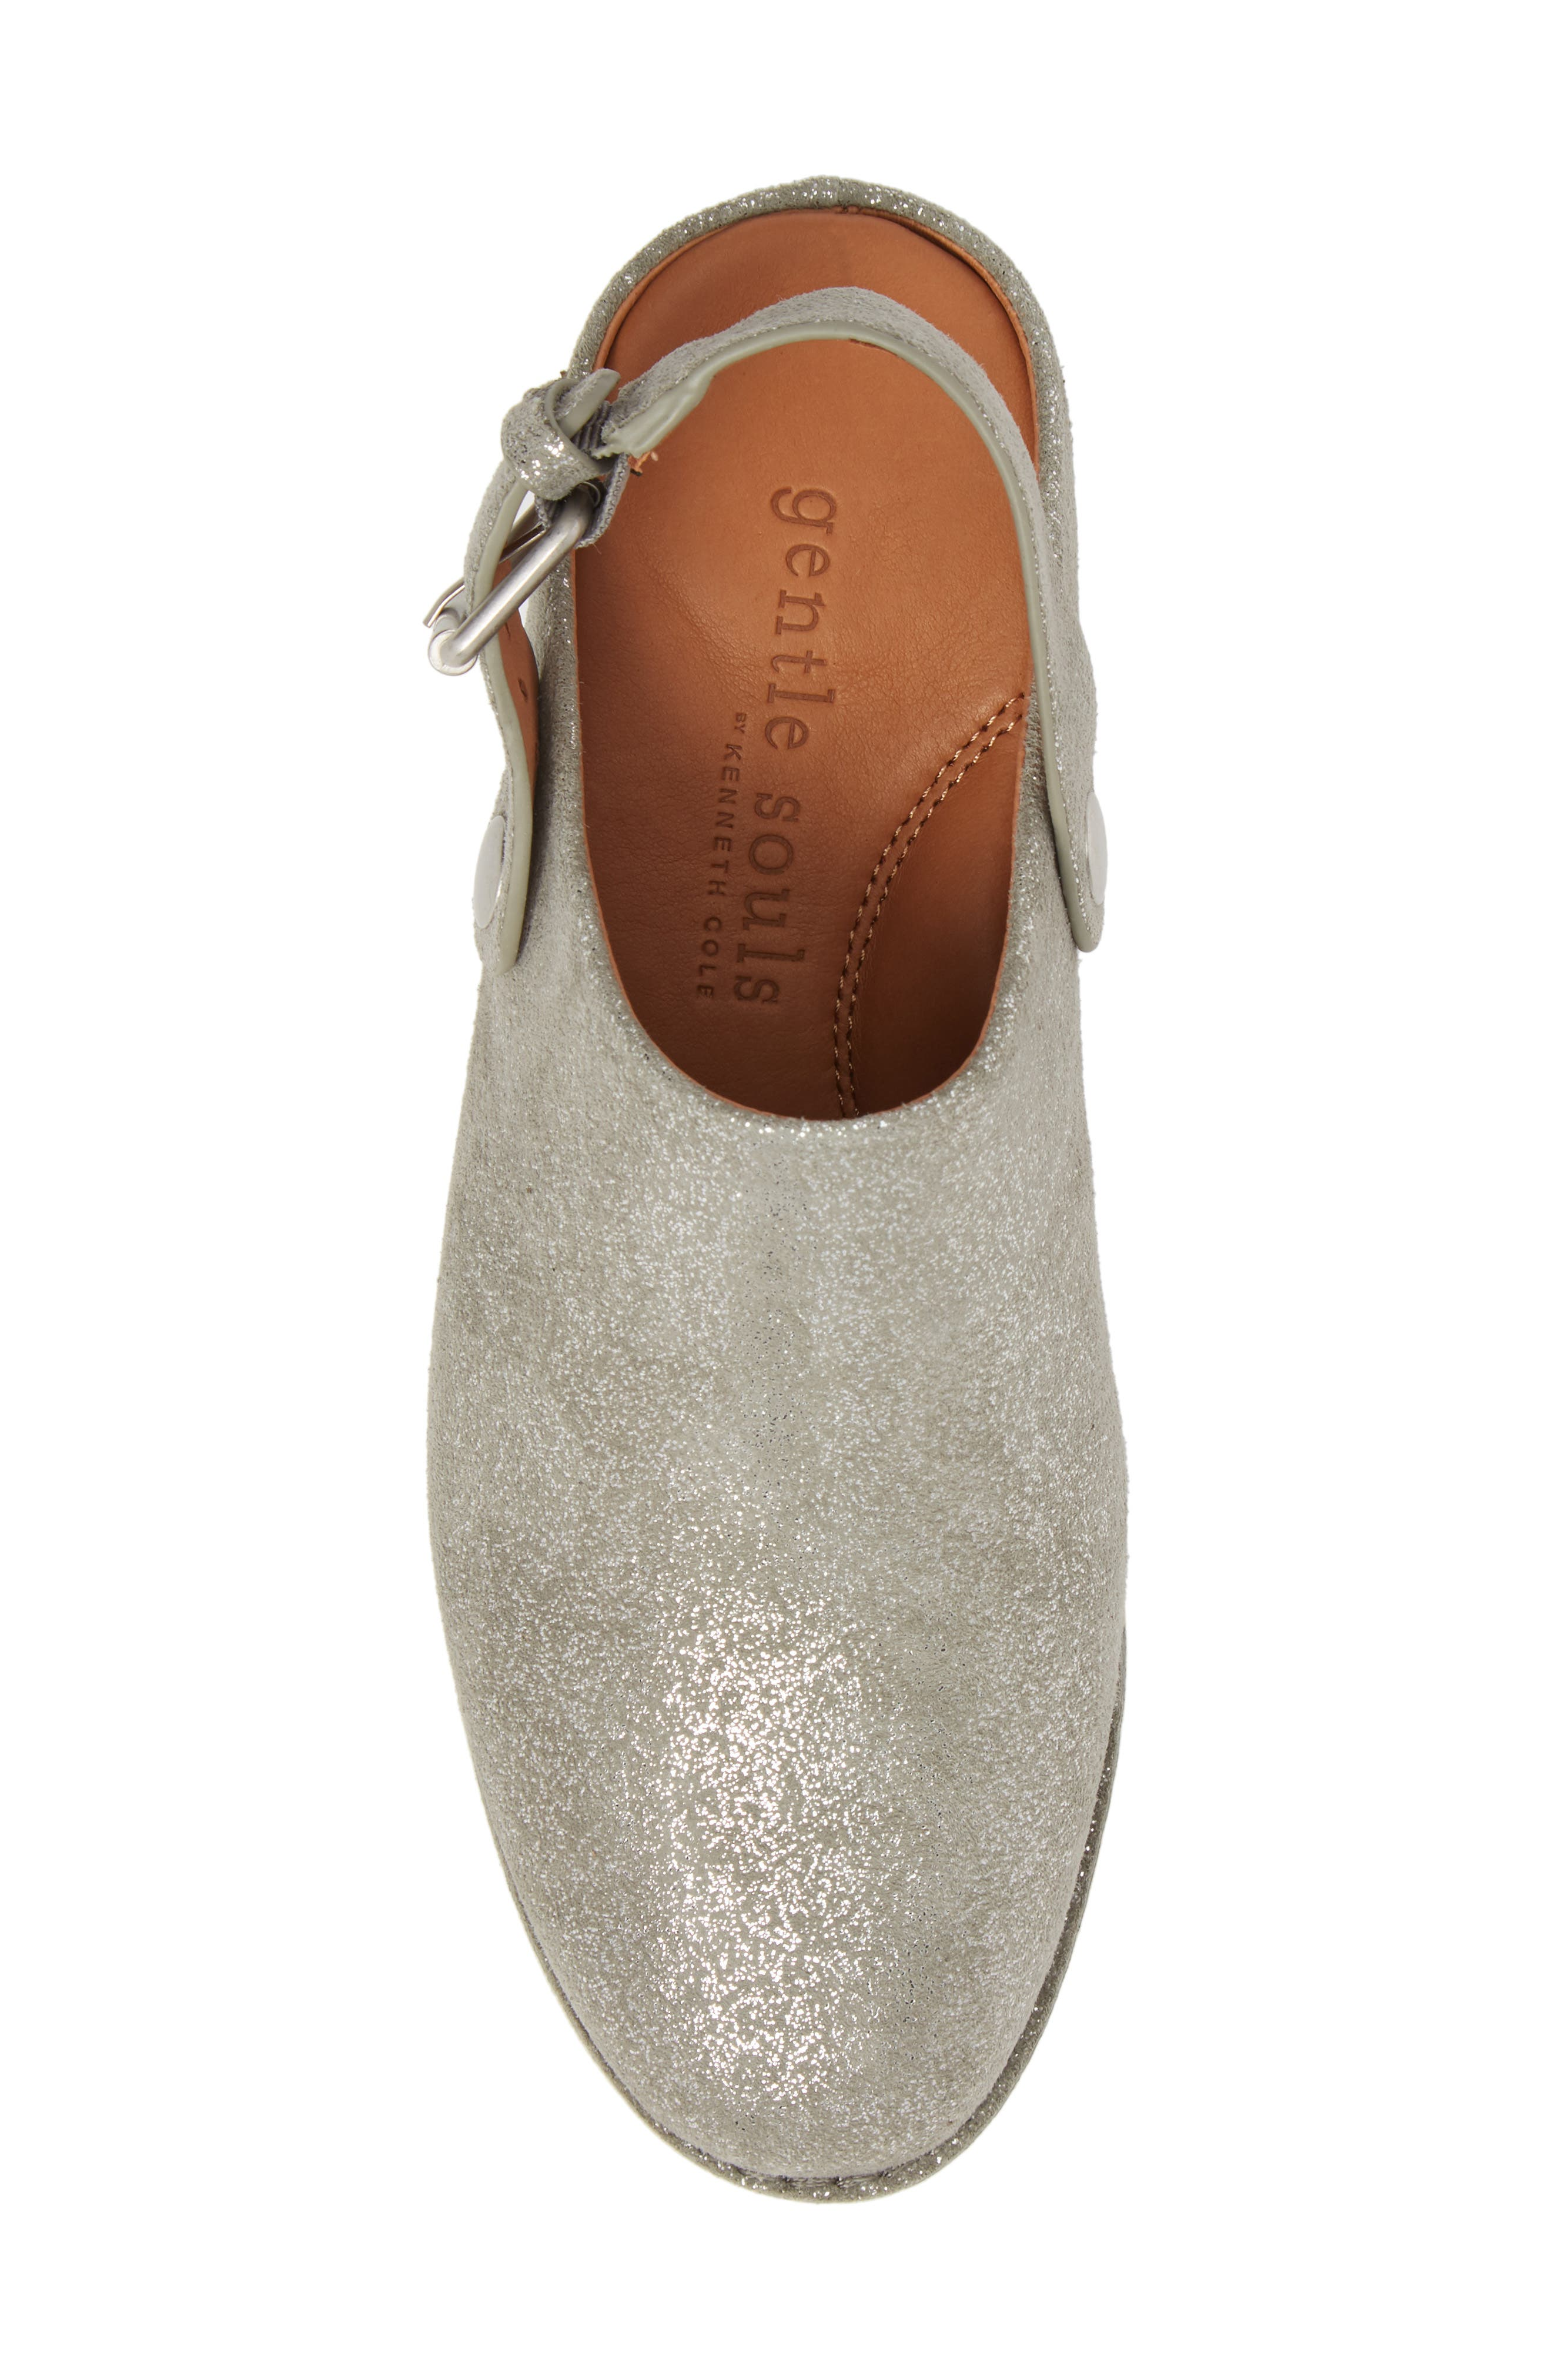 GENTLE SOULS BY KENNETH COLE, Esther Convertible Wedge, Alternate thumbnail 5, color, LIGHT PEWTER METALLIC LEATHER